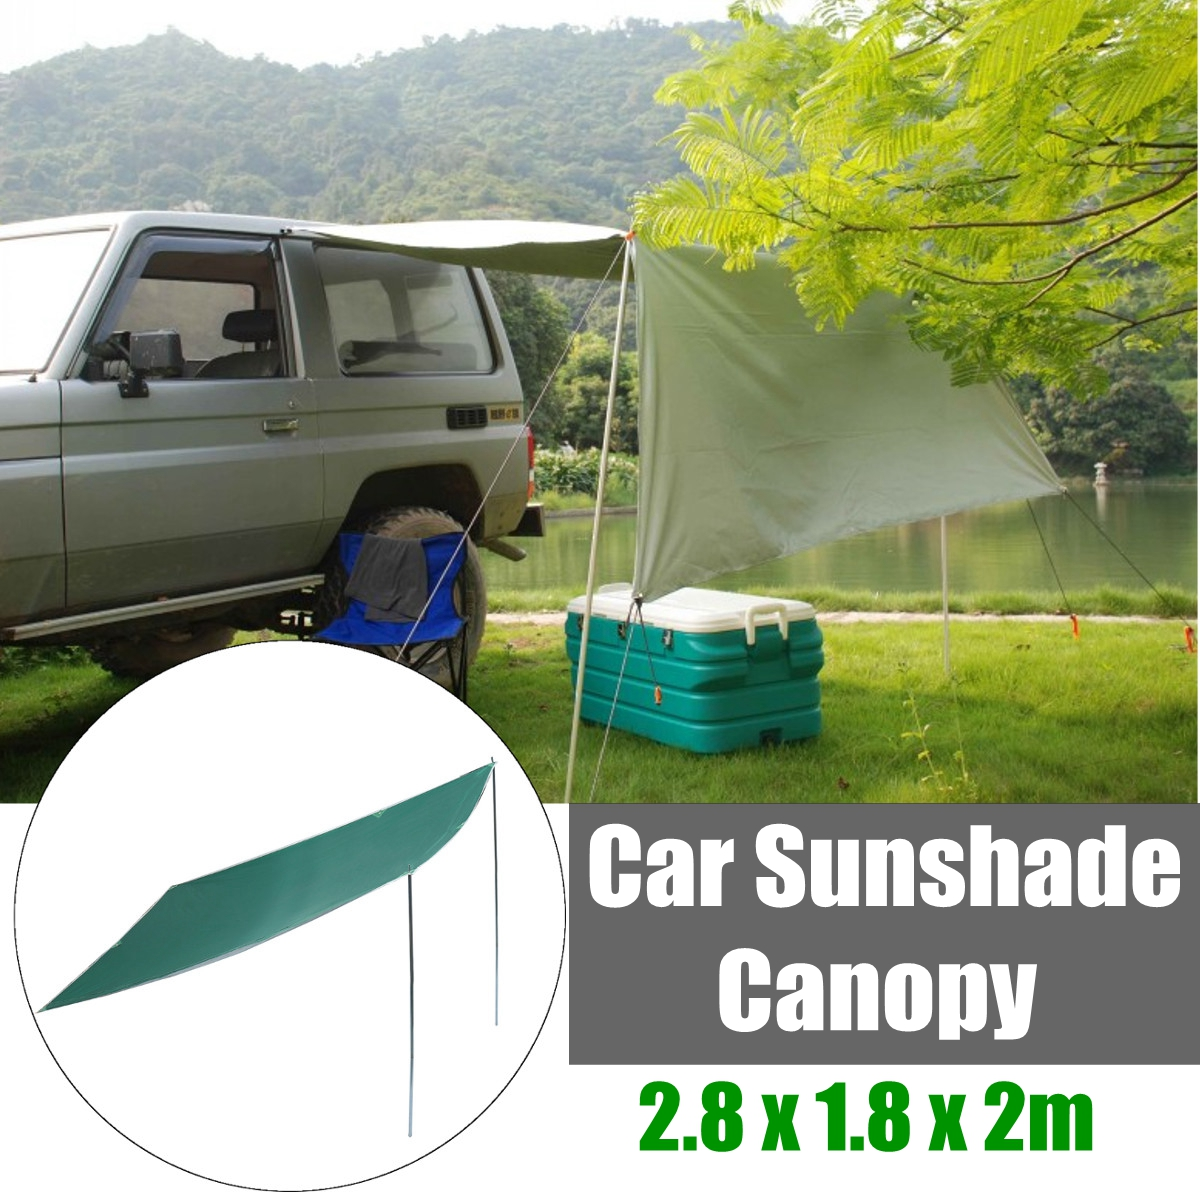 2.8 x 1.8m Sunshade Tent Car Outdoor Folding Waterproof Camping Roof Top Tent Folding Anti-UV Car Canopy Sun Shelter2.8 x 1.8m Sunshade Tent Car Outdoor Folding Waterproof Camping Roof Top Tent Folding Anti-UV Car Canopy Sun Shelter